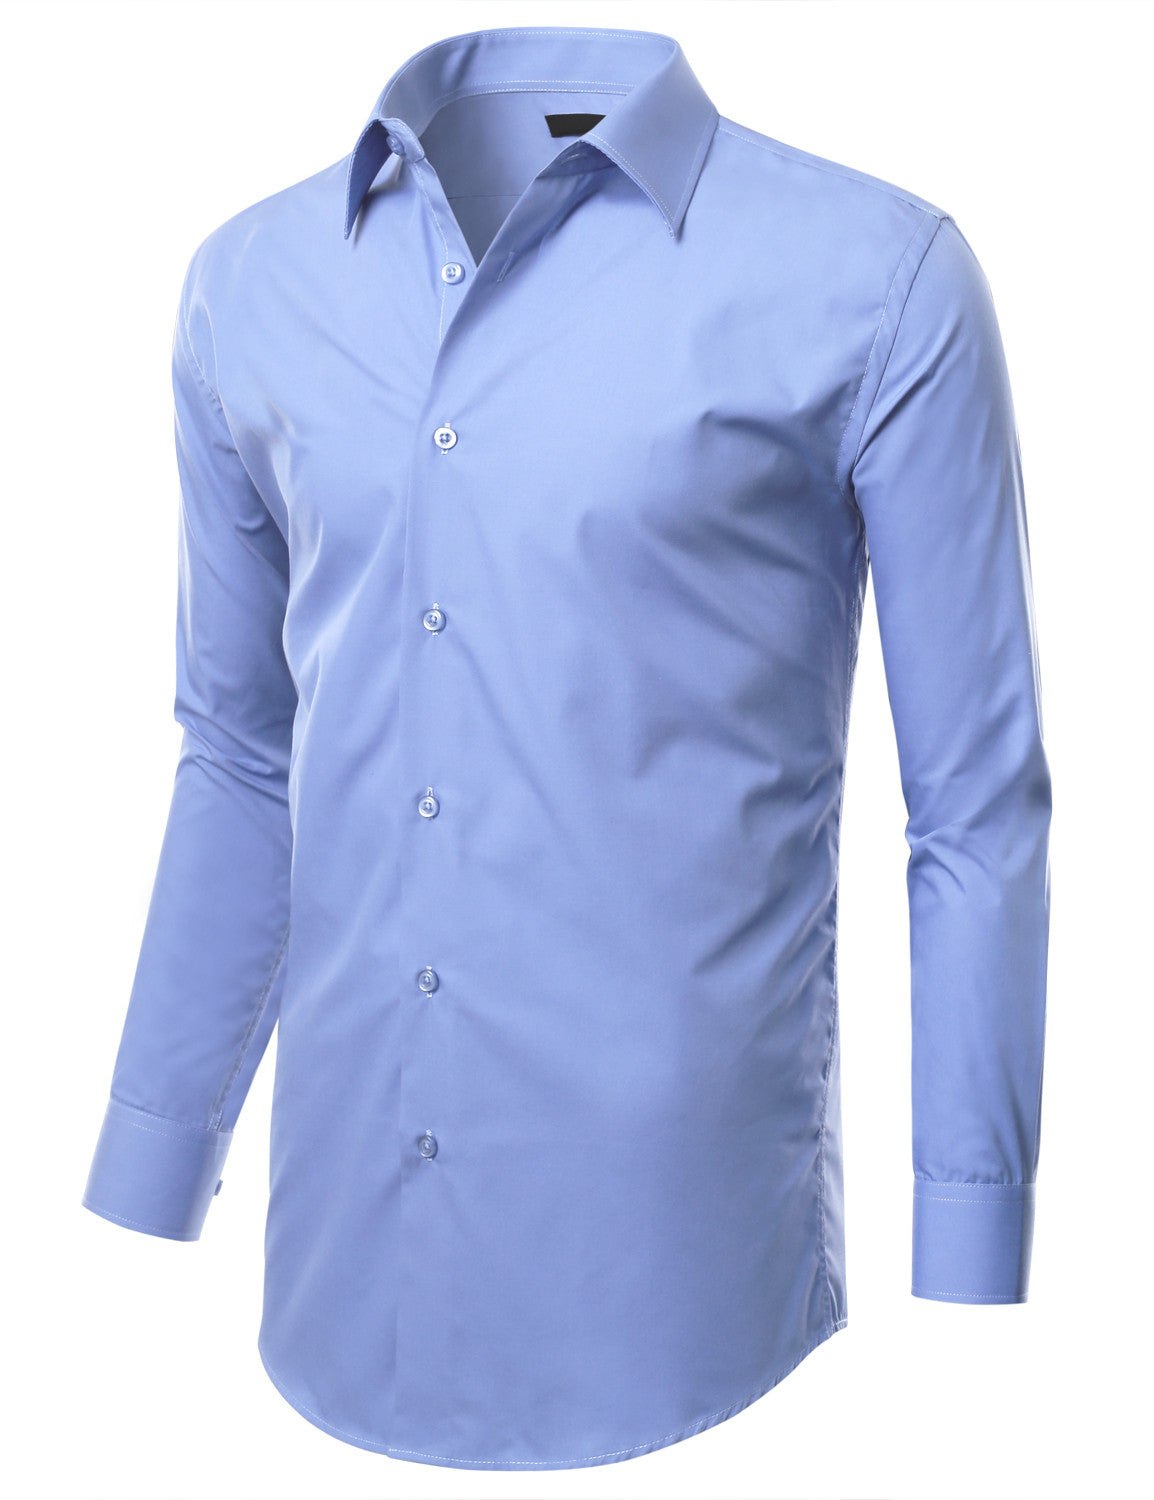 TC627BABYBLUE Baby Blue Slim Fit Dress Shirt w/ Reversible Cuff (Big & Tall Available)- MONDAYSUIT